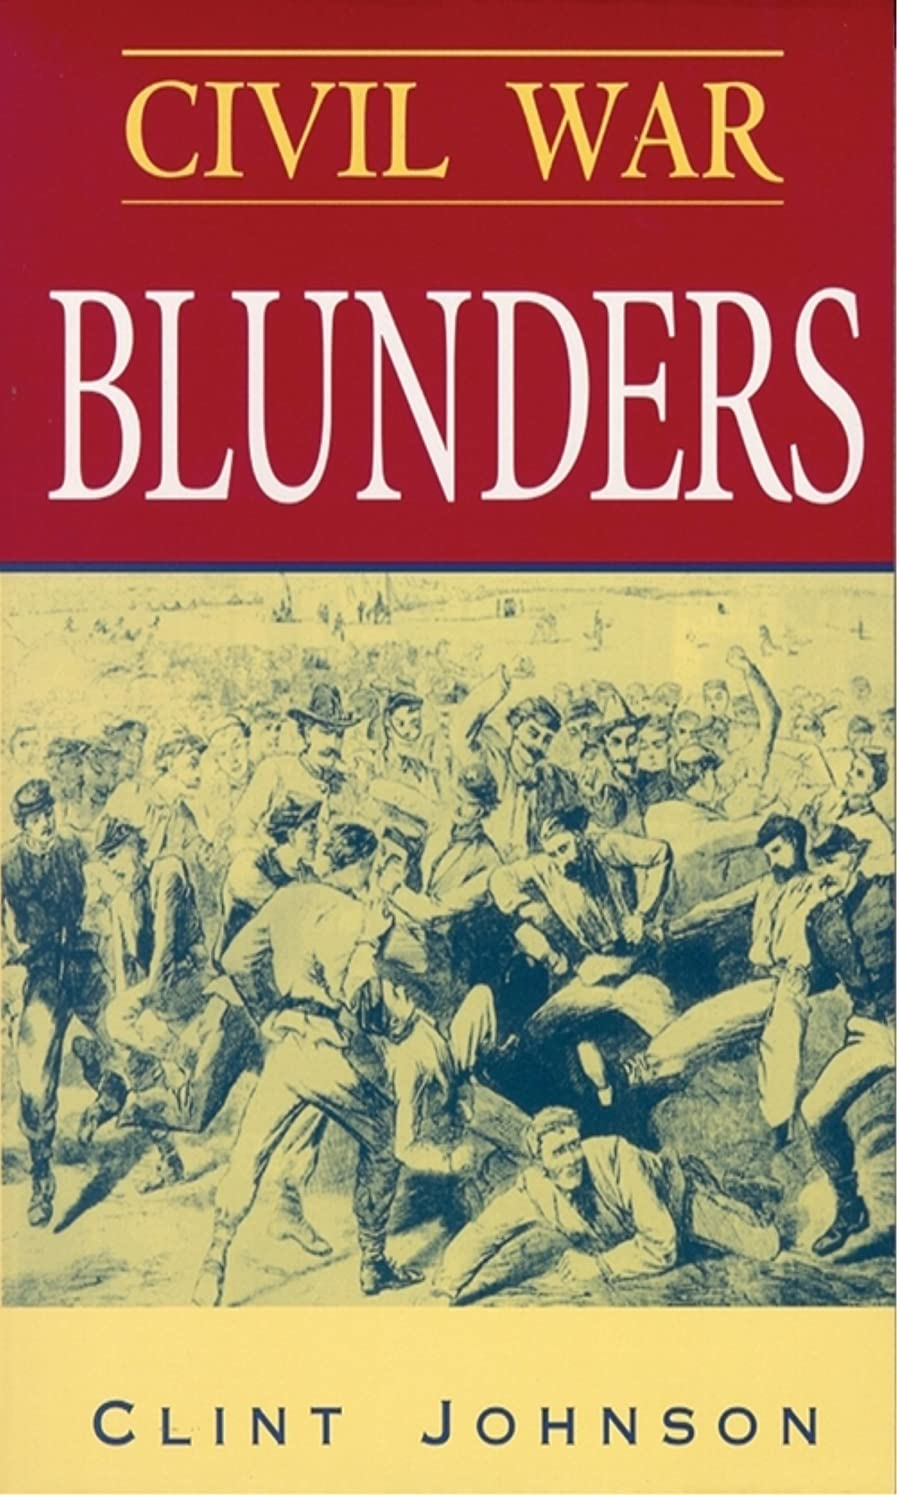 寛大さ弾性才能のあるCivil War Blunders: Amusing Incidents From the War (English Edition)